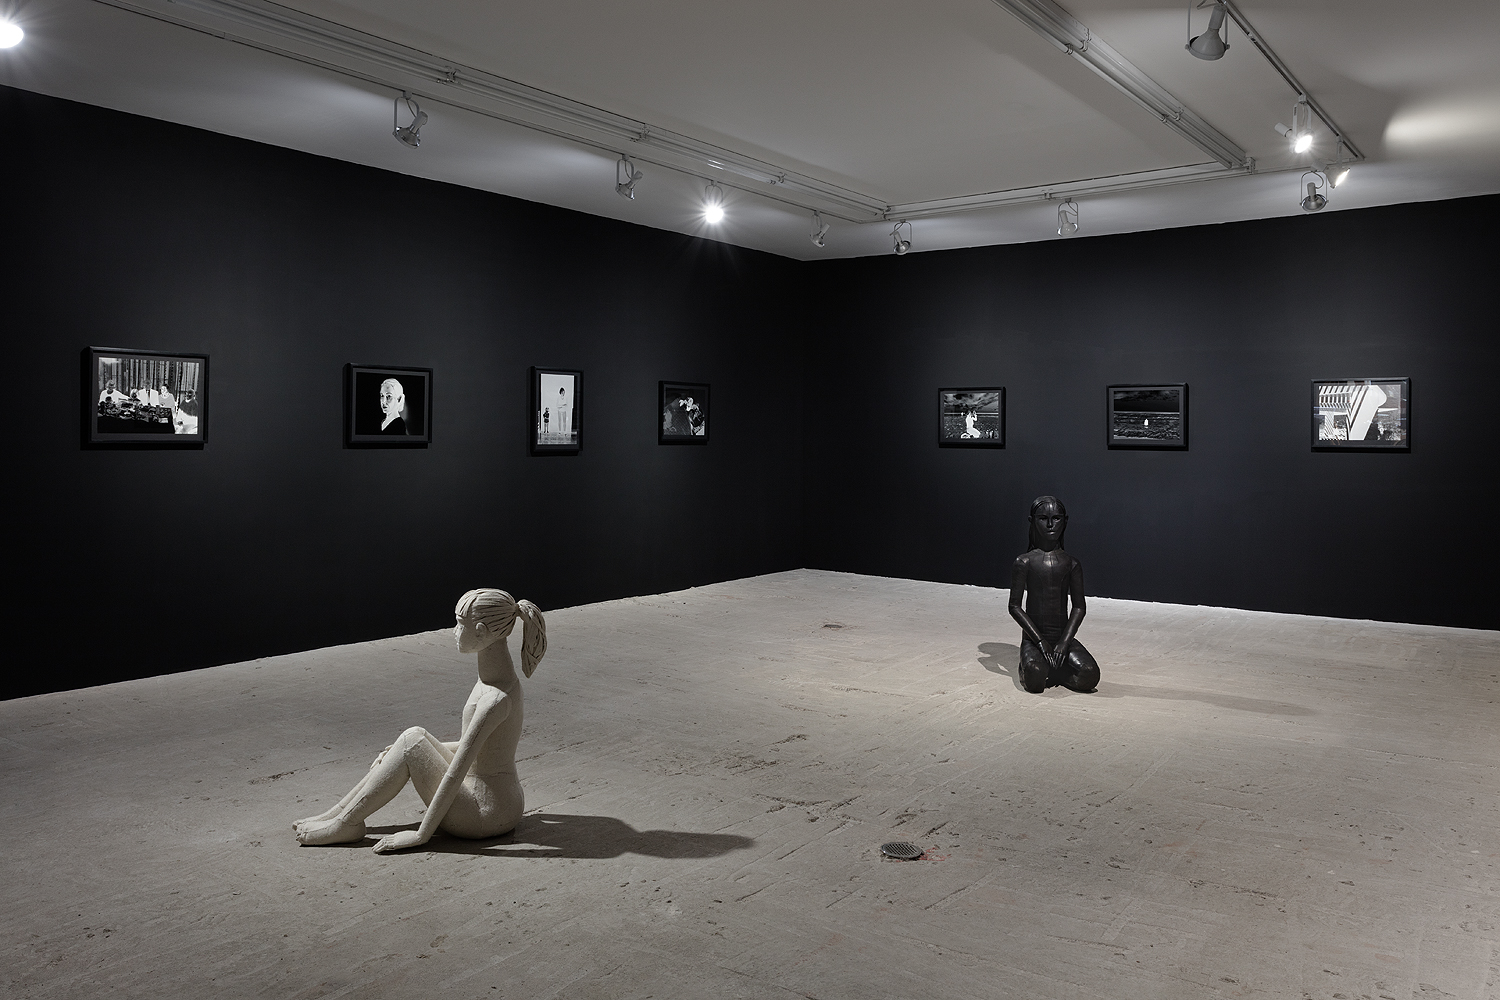 Installation view at Lyles & King